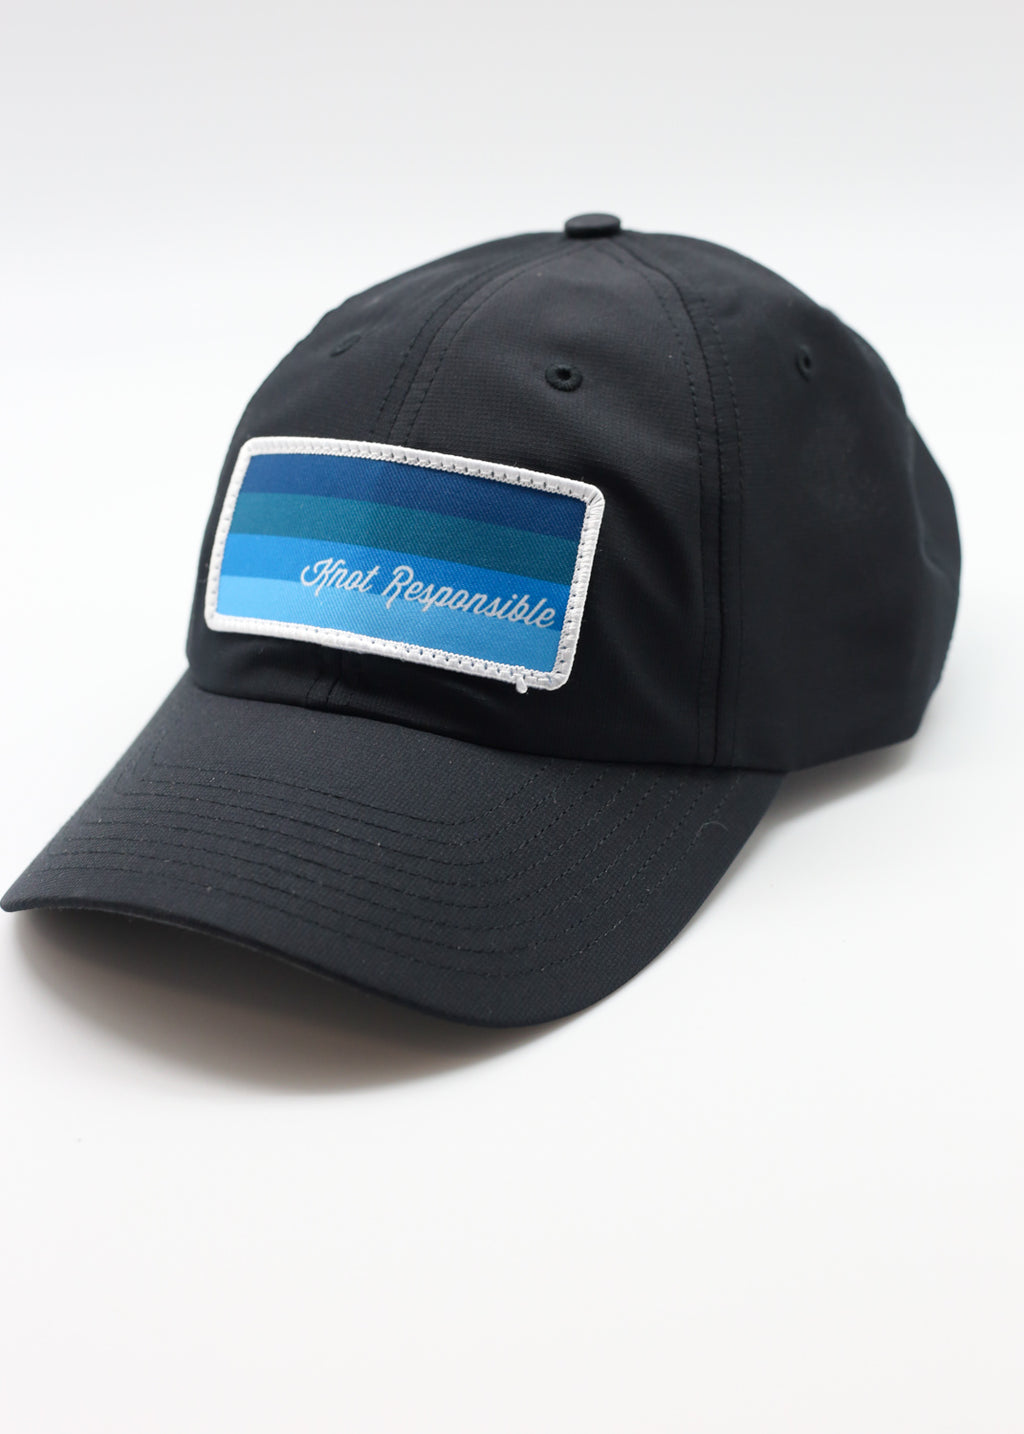 Stripe Performance Hat- Black